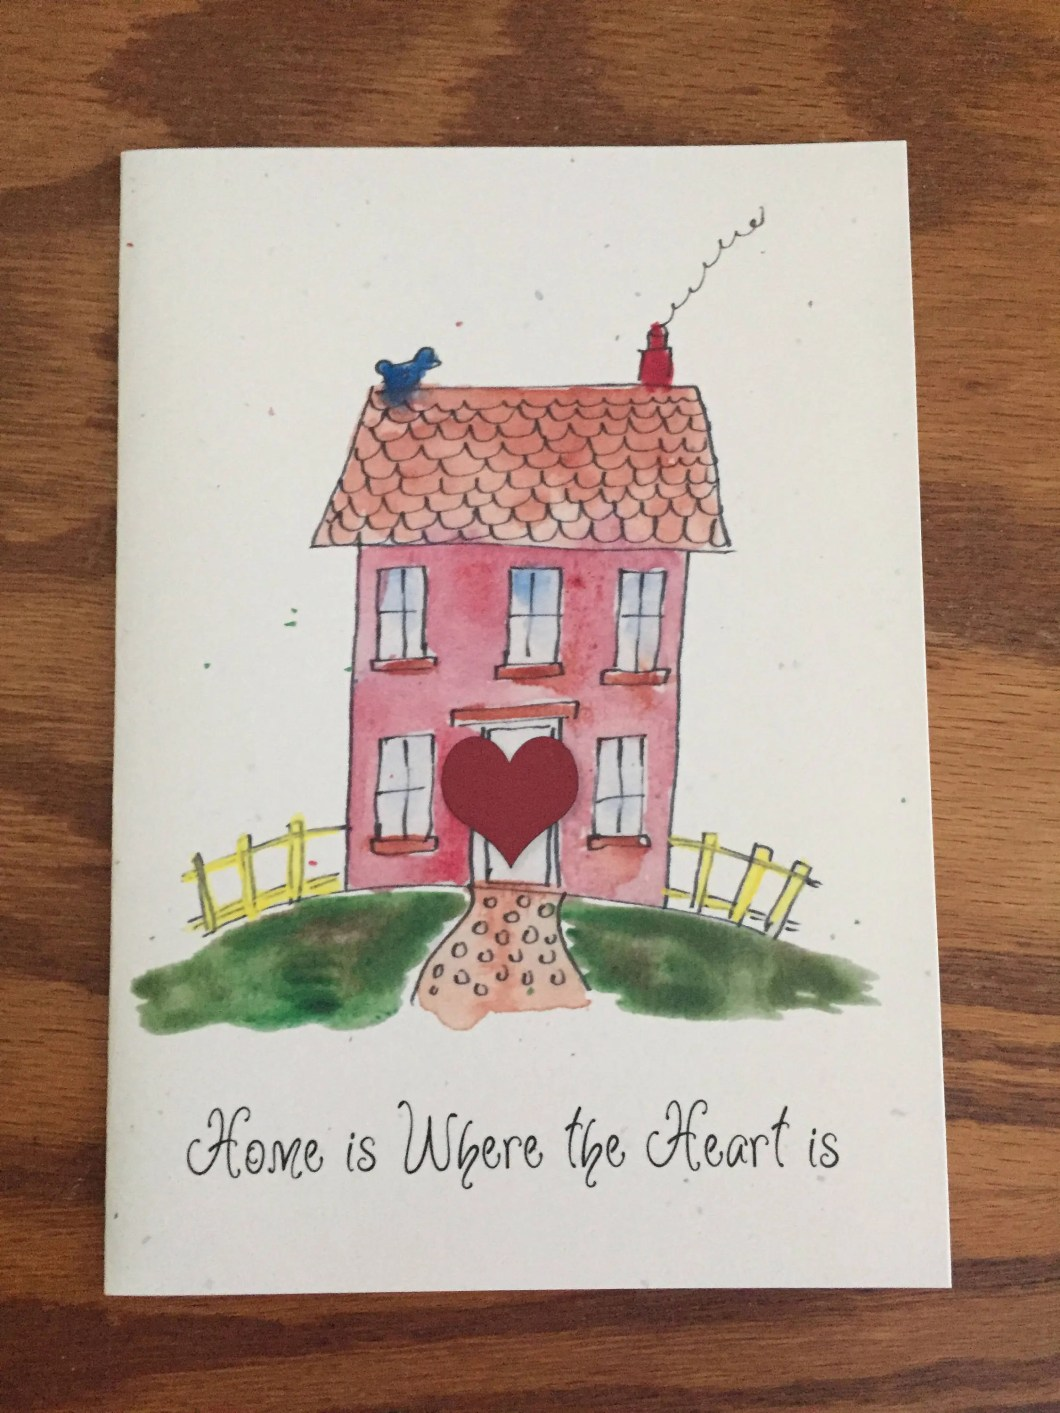 Home is where the heart i...